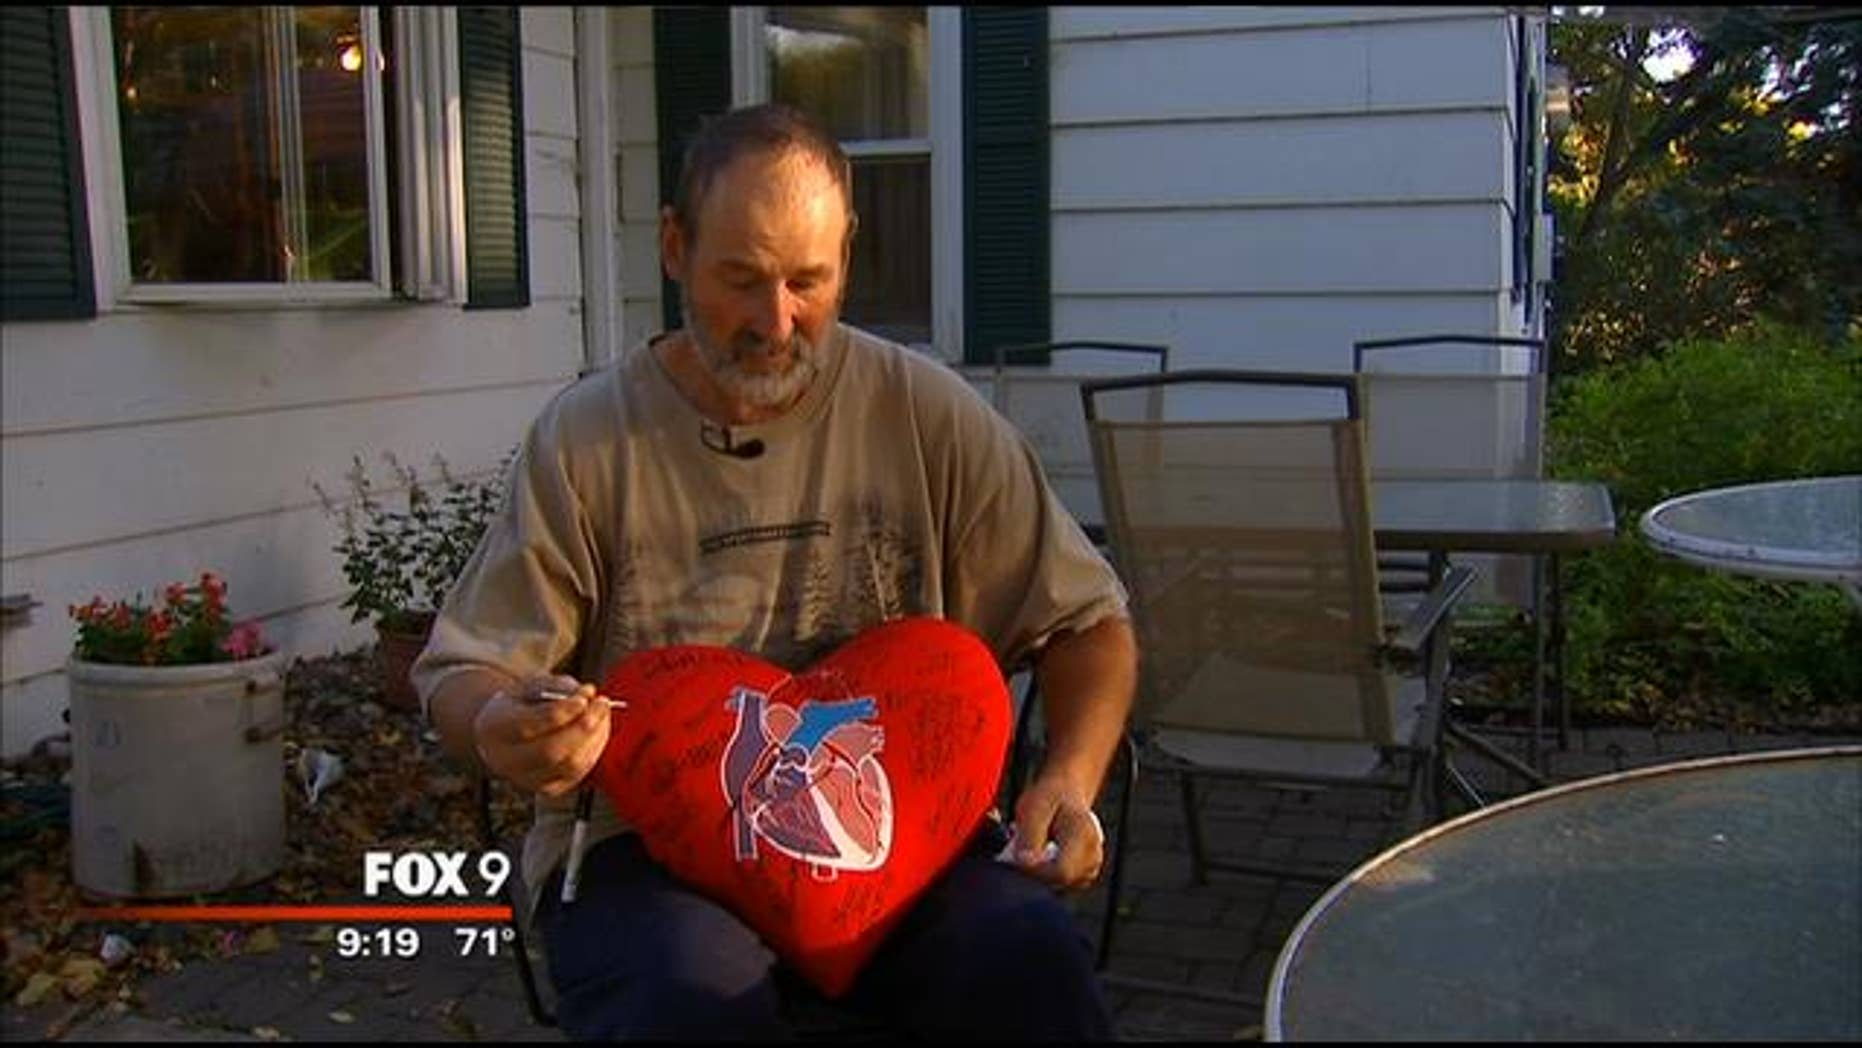 Euguene Rakow indicates precisely where he shot himself in the heart with a nail gun last week at his home in Minnesota. (MyFoxTwinCities.com)